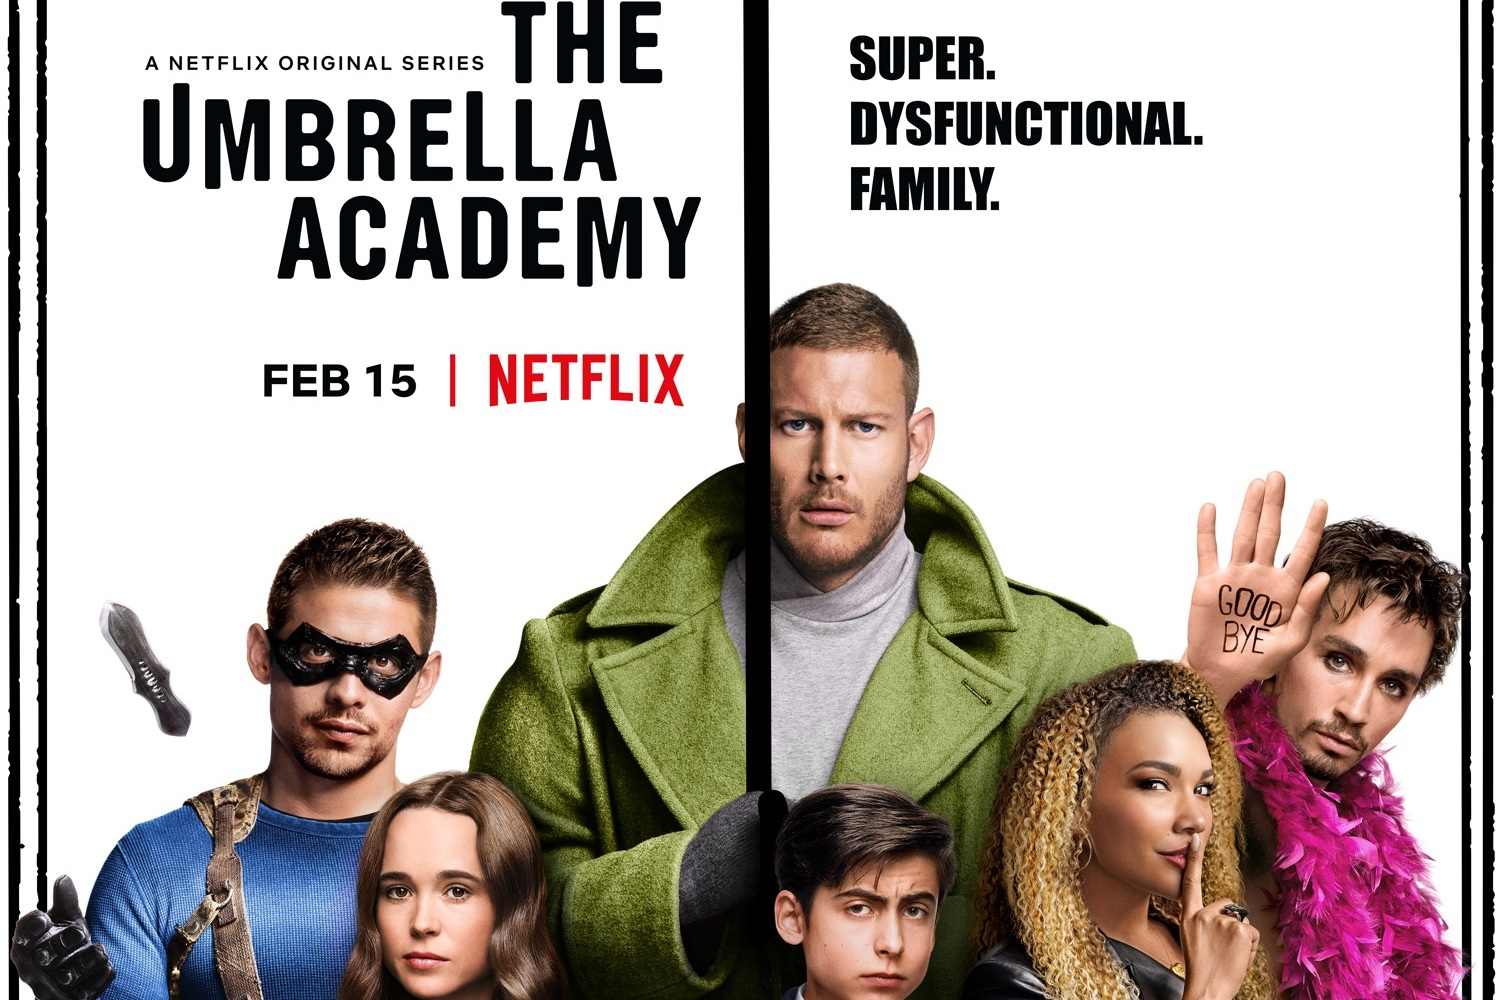 Monsters Aliens Robots Zombies VFX — Umbrella Academy renewed for